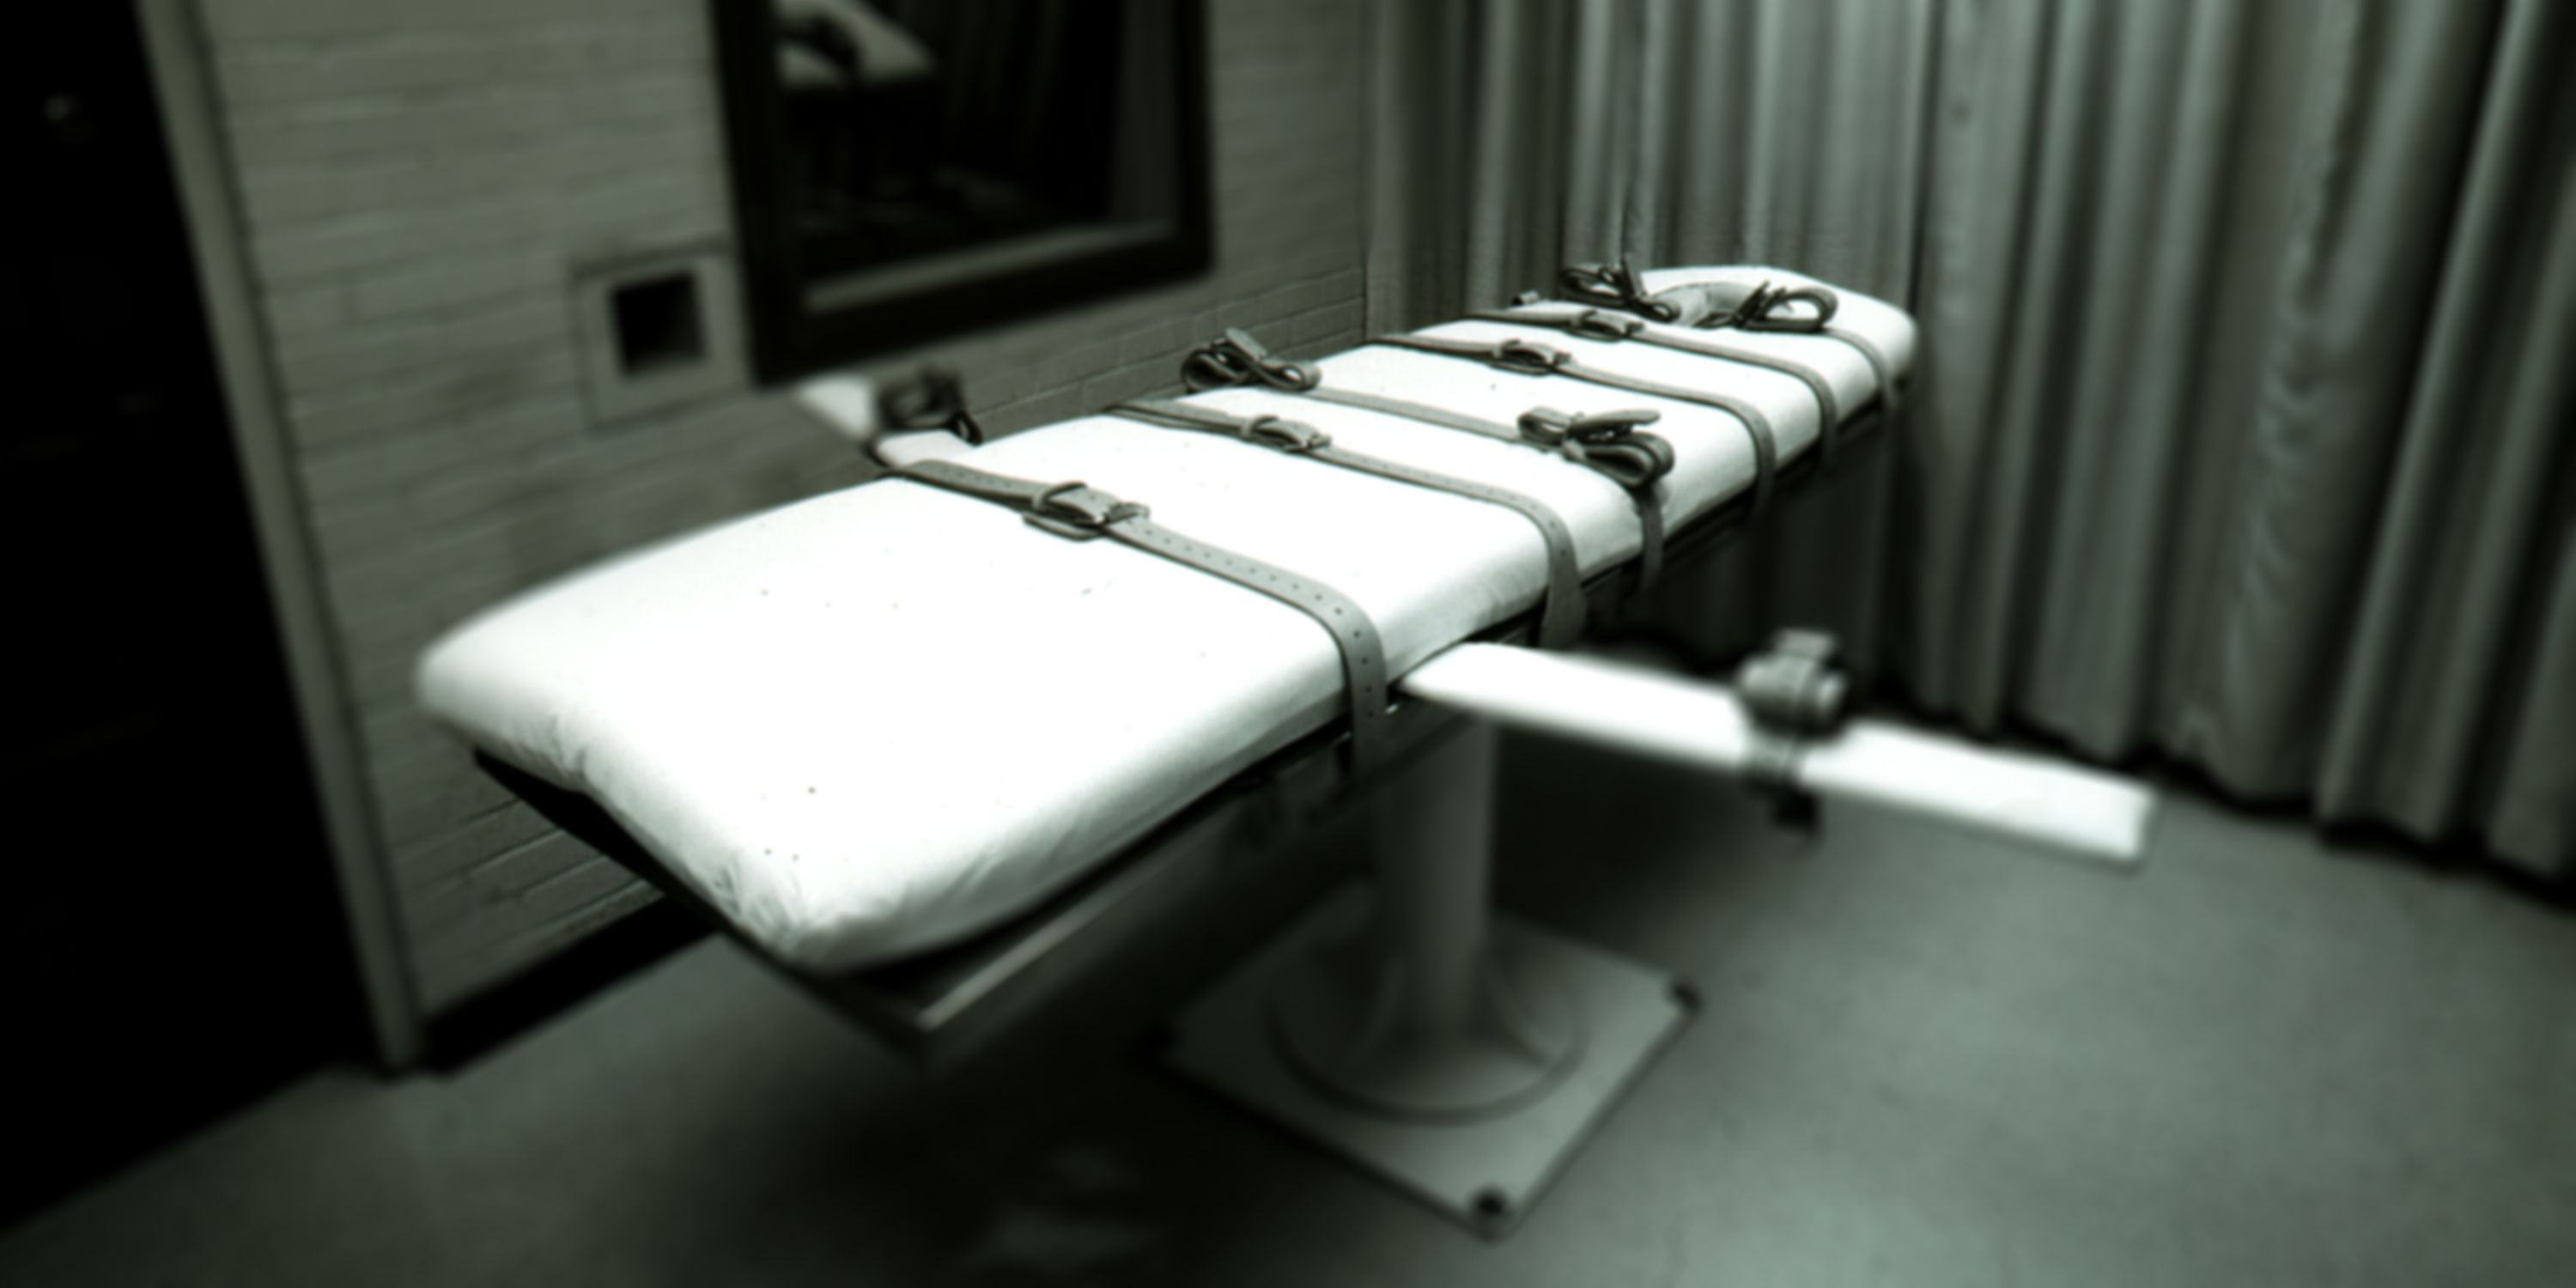 Our capital punishment practices are unconstitutional. Period.